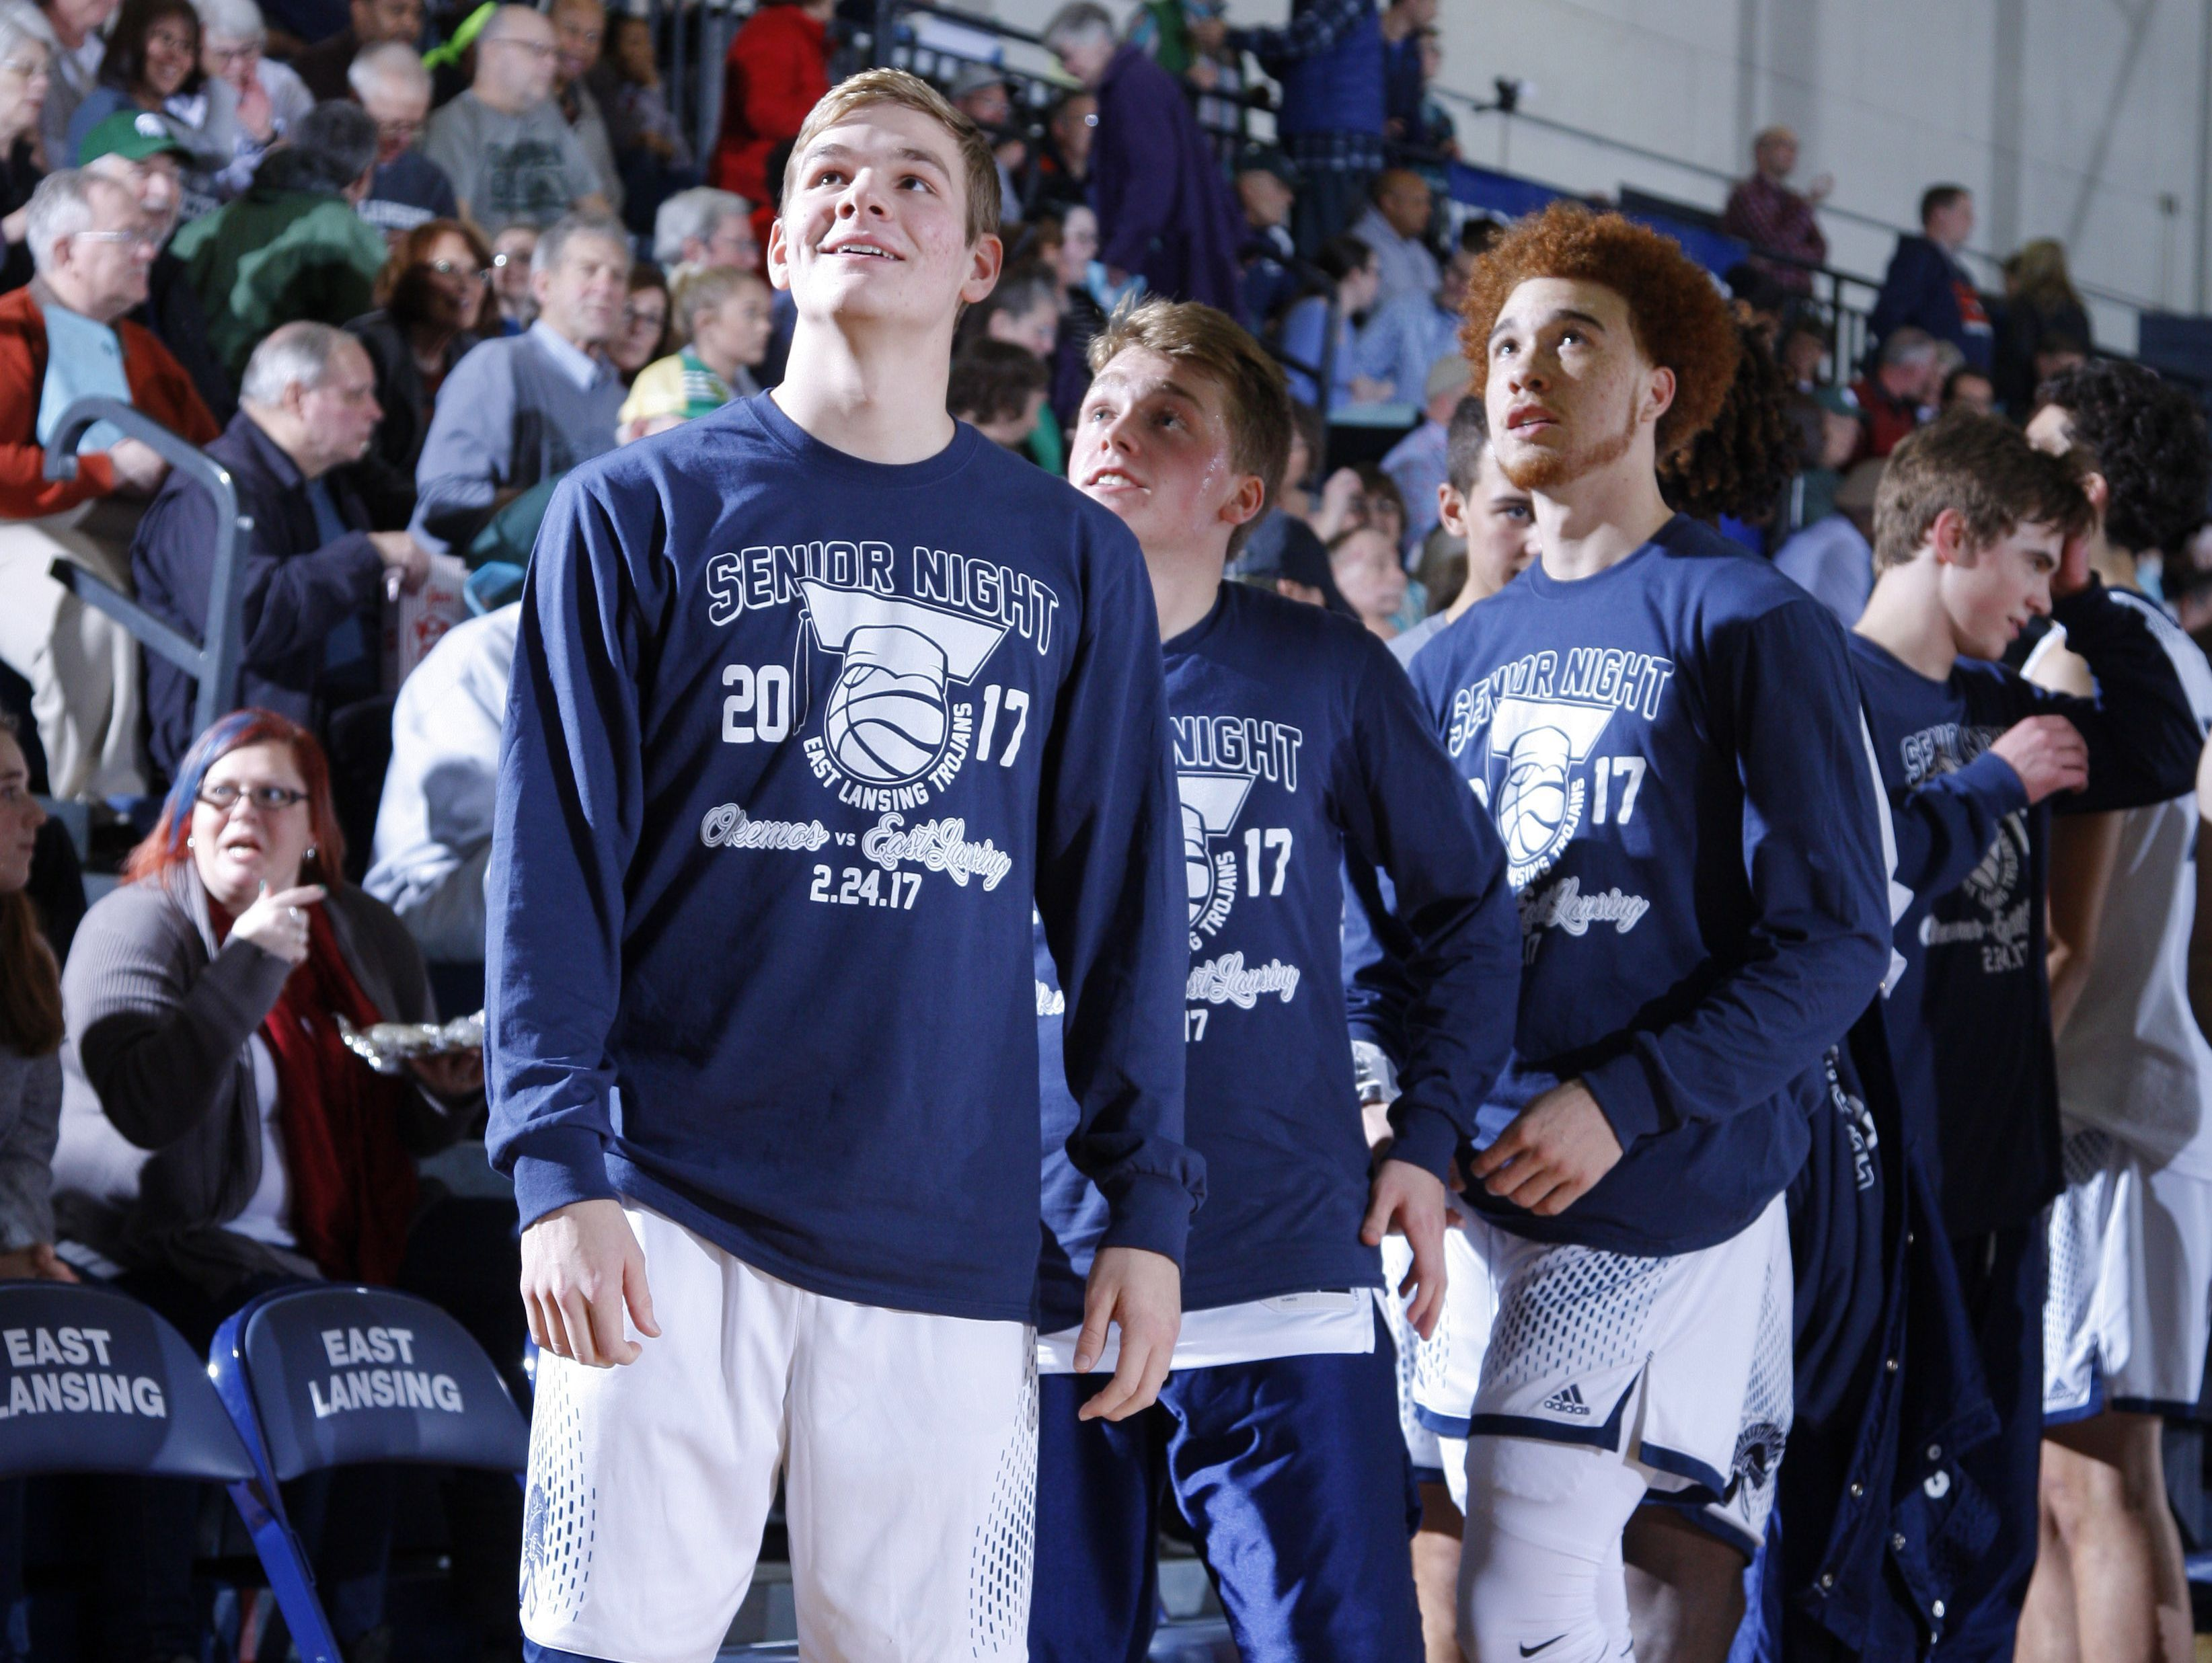 East Lansing senior Caleb Hoekstra, left, who suffered a broken foot earlier in the season, stands with teammates before a senior day game against Okemos Friday, Feb. 24, 2017, in East Lansing, Mich.